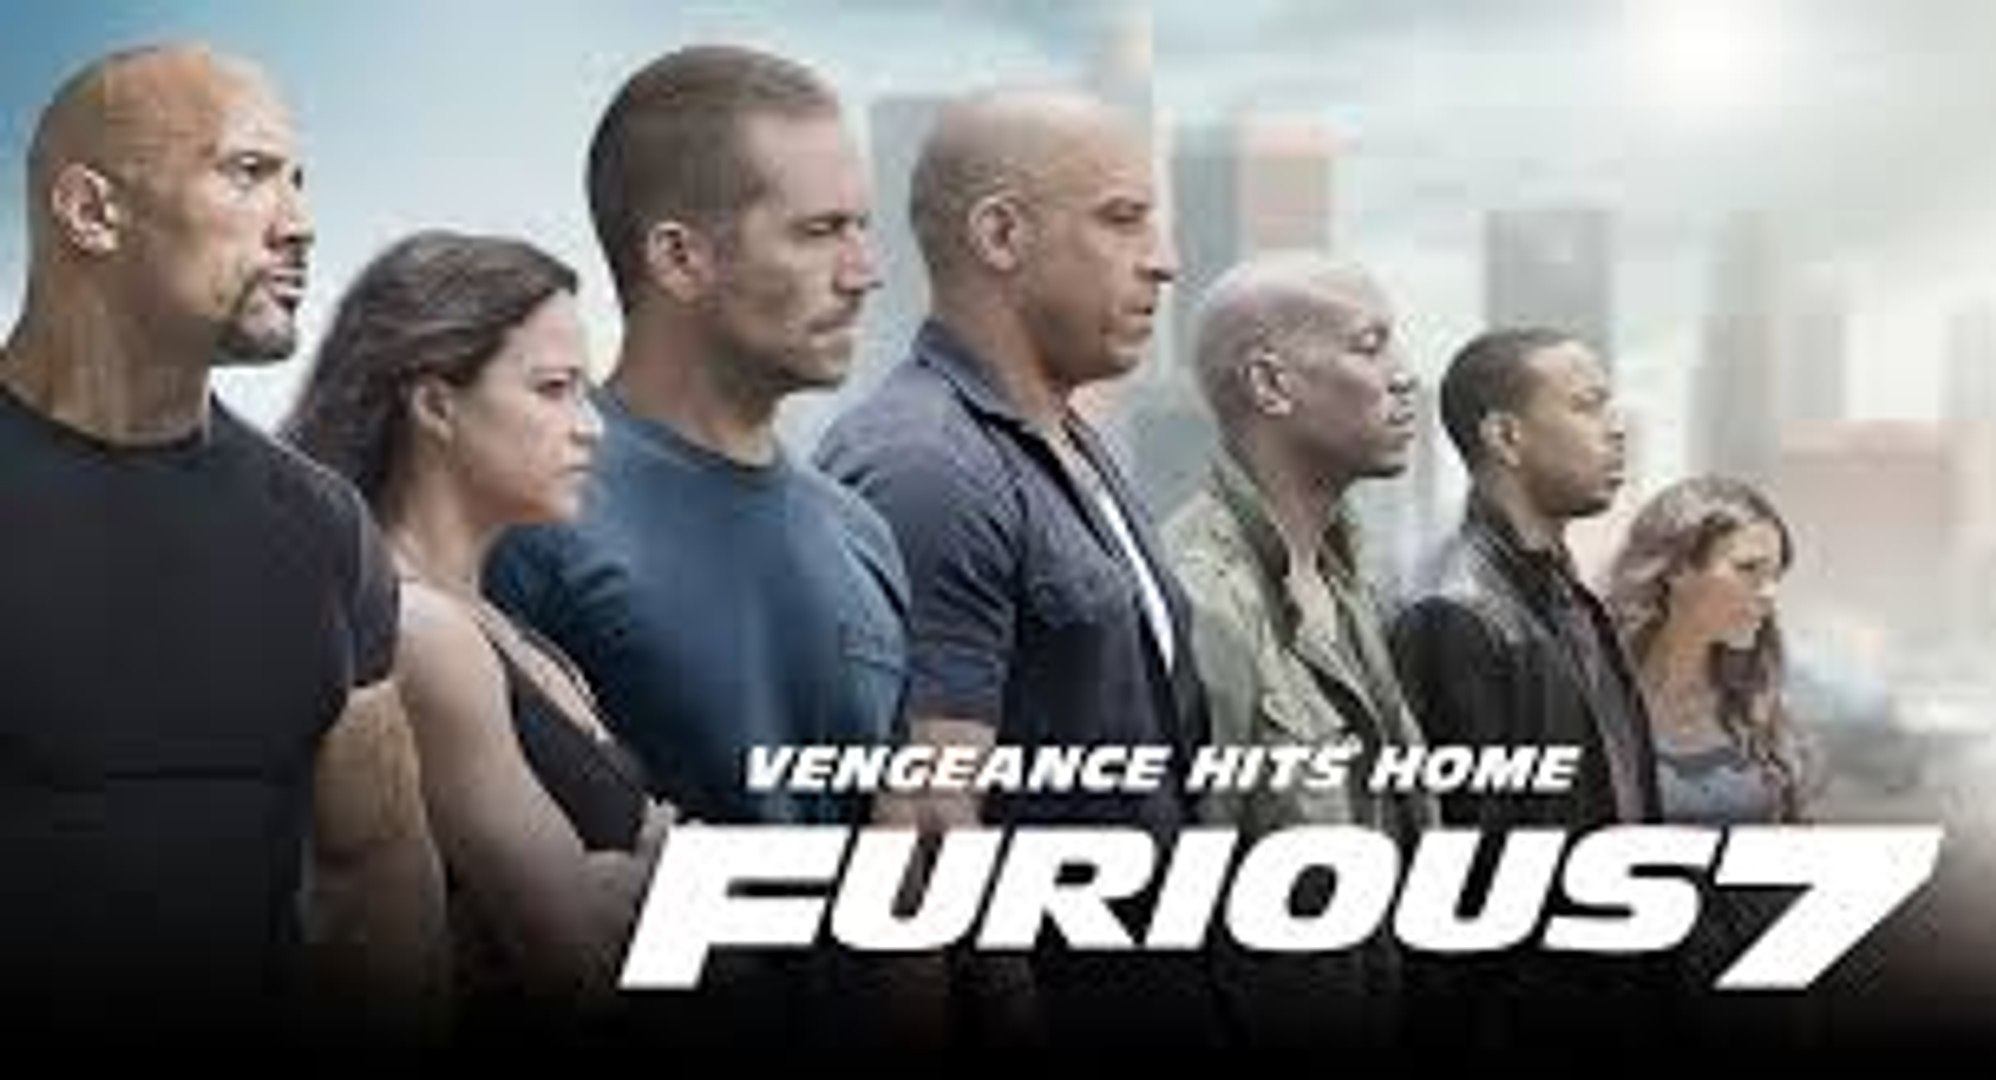 fast and furious 7 full movie free watch online hd